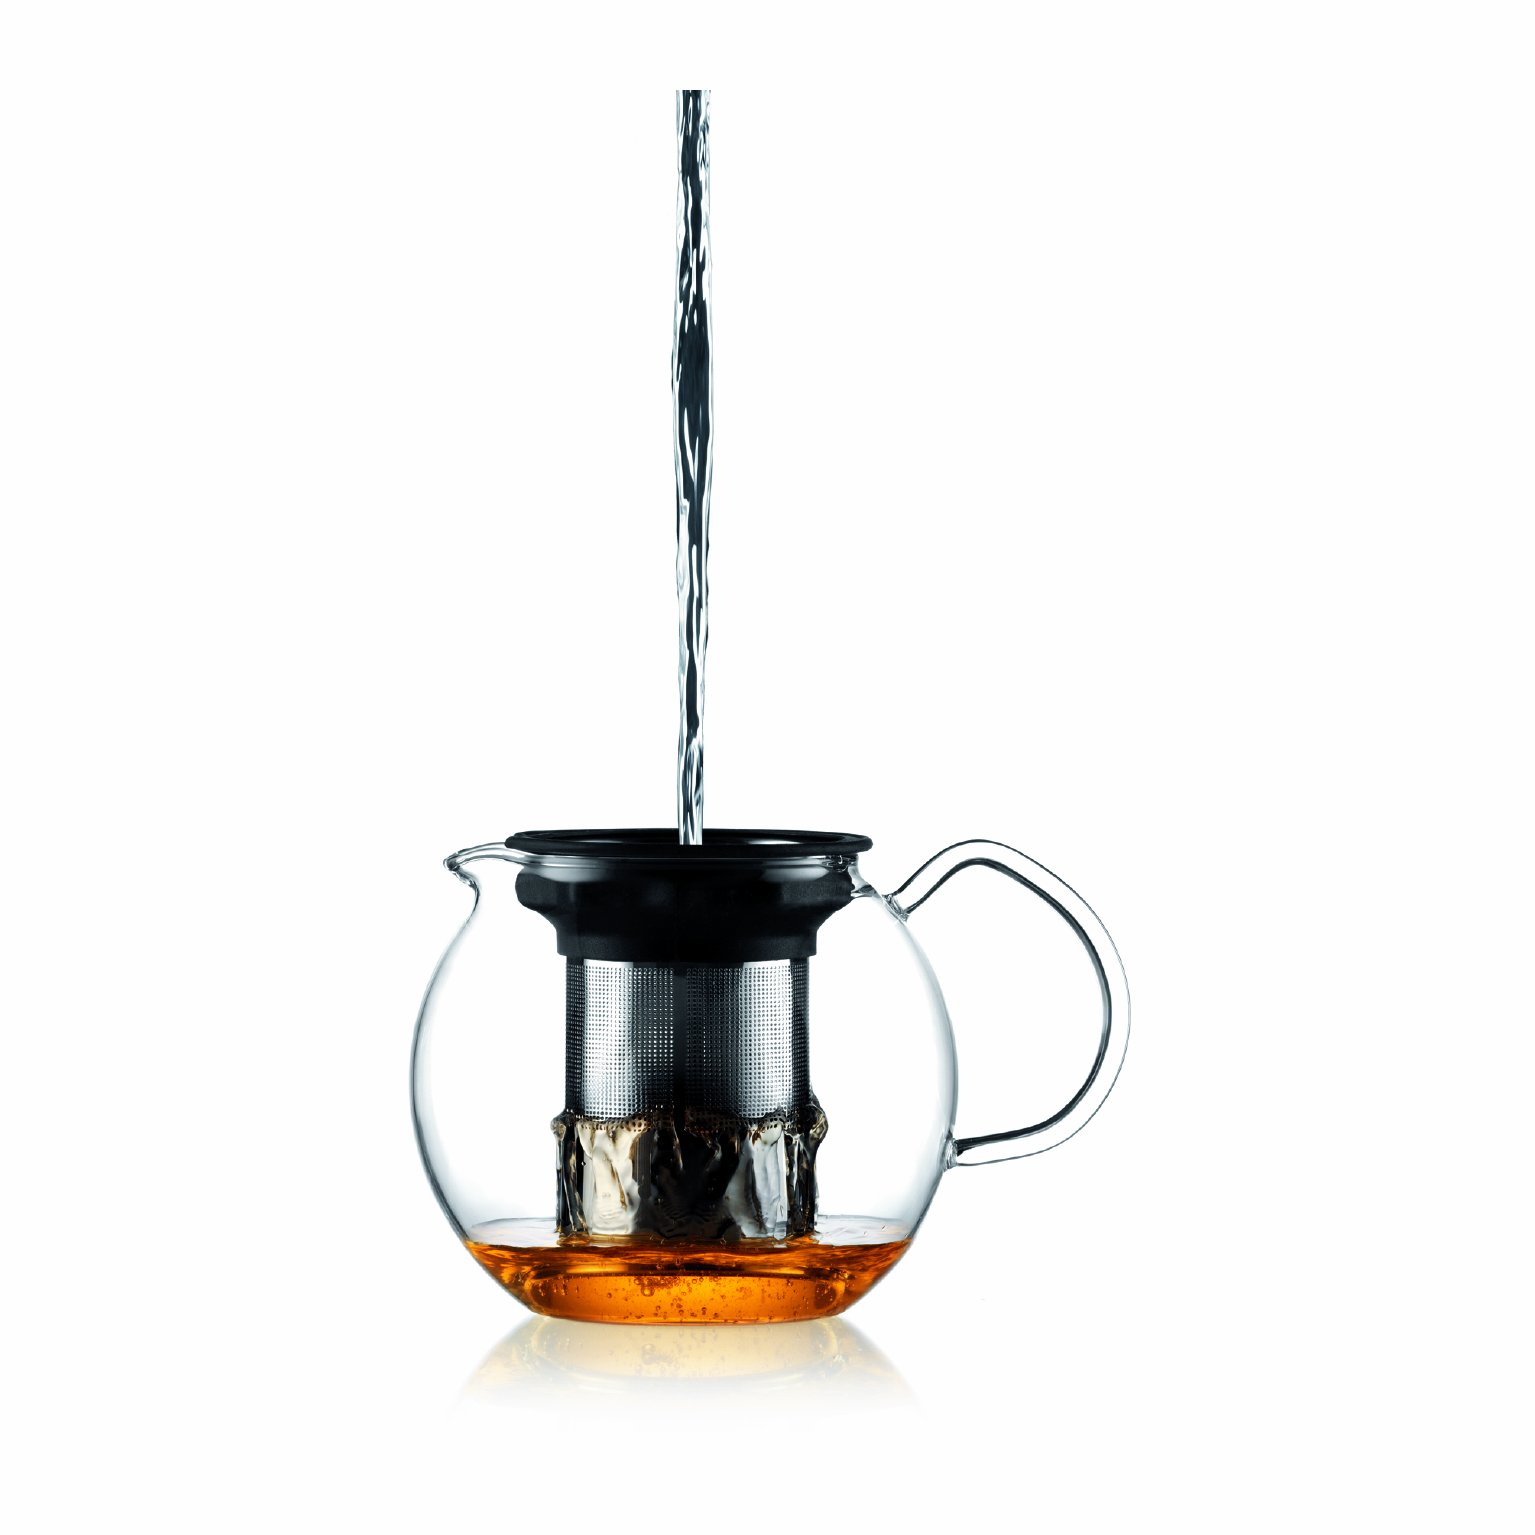 Bodum 1801-16US4 ASSAM Teapot, Glass Teapot with Stainless Steel Filter, 34 Ounce by Bodum (Image #3)